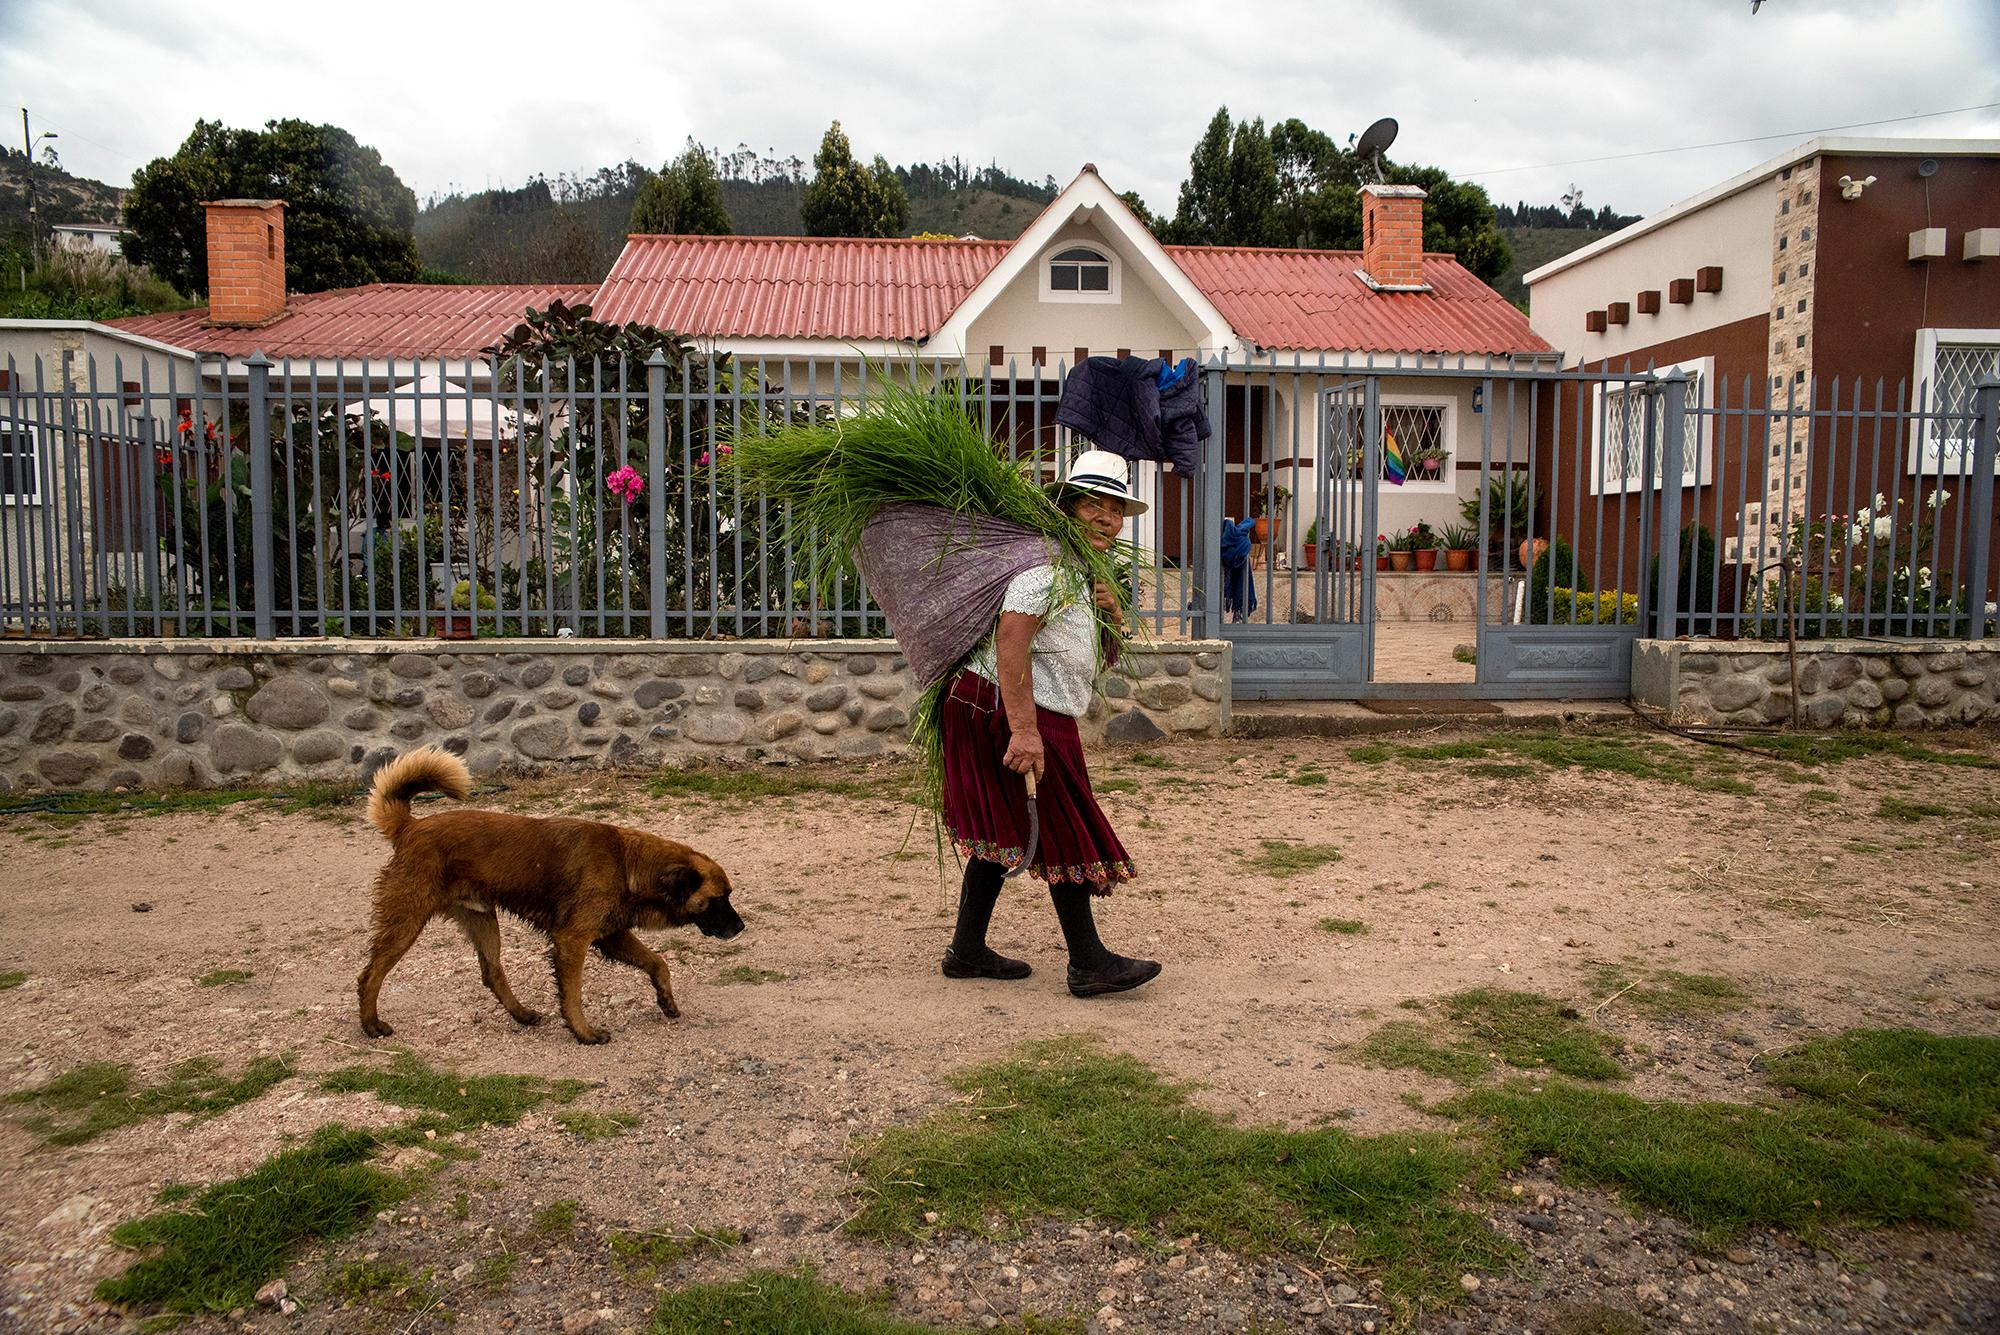 Julia Tacuri (79), a Kañari indigenous woman, is carrying grass to feed her animals in the afternoon of March, 22. 2020. Cuenca, Ecuador. Johis Alarcón for The New York Times.